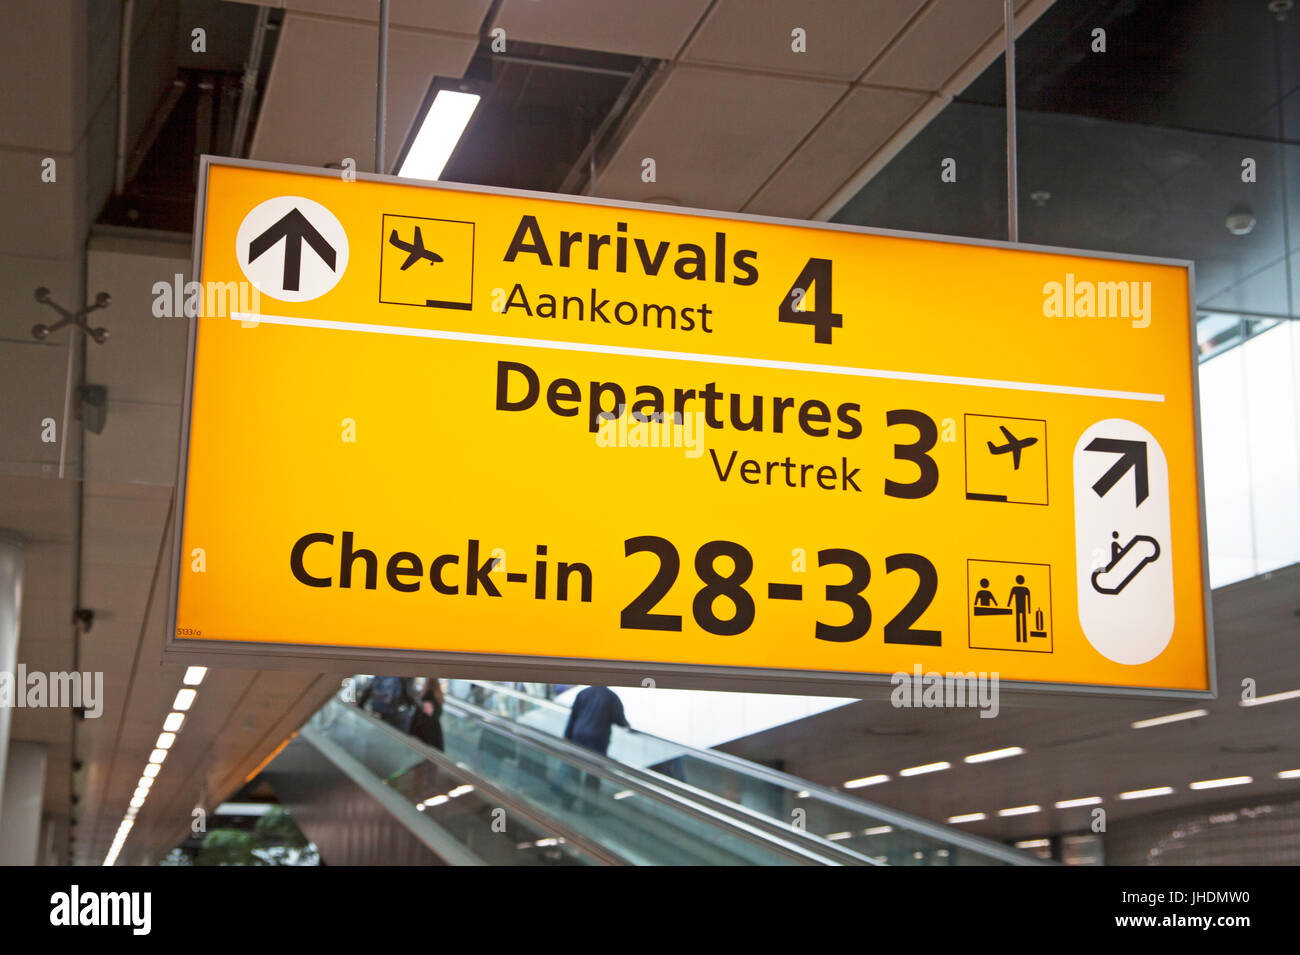 Electric aviation information board for passengers at the airport. Arrivals, checkin and departures. - Stock Image